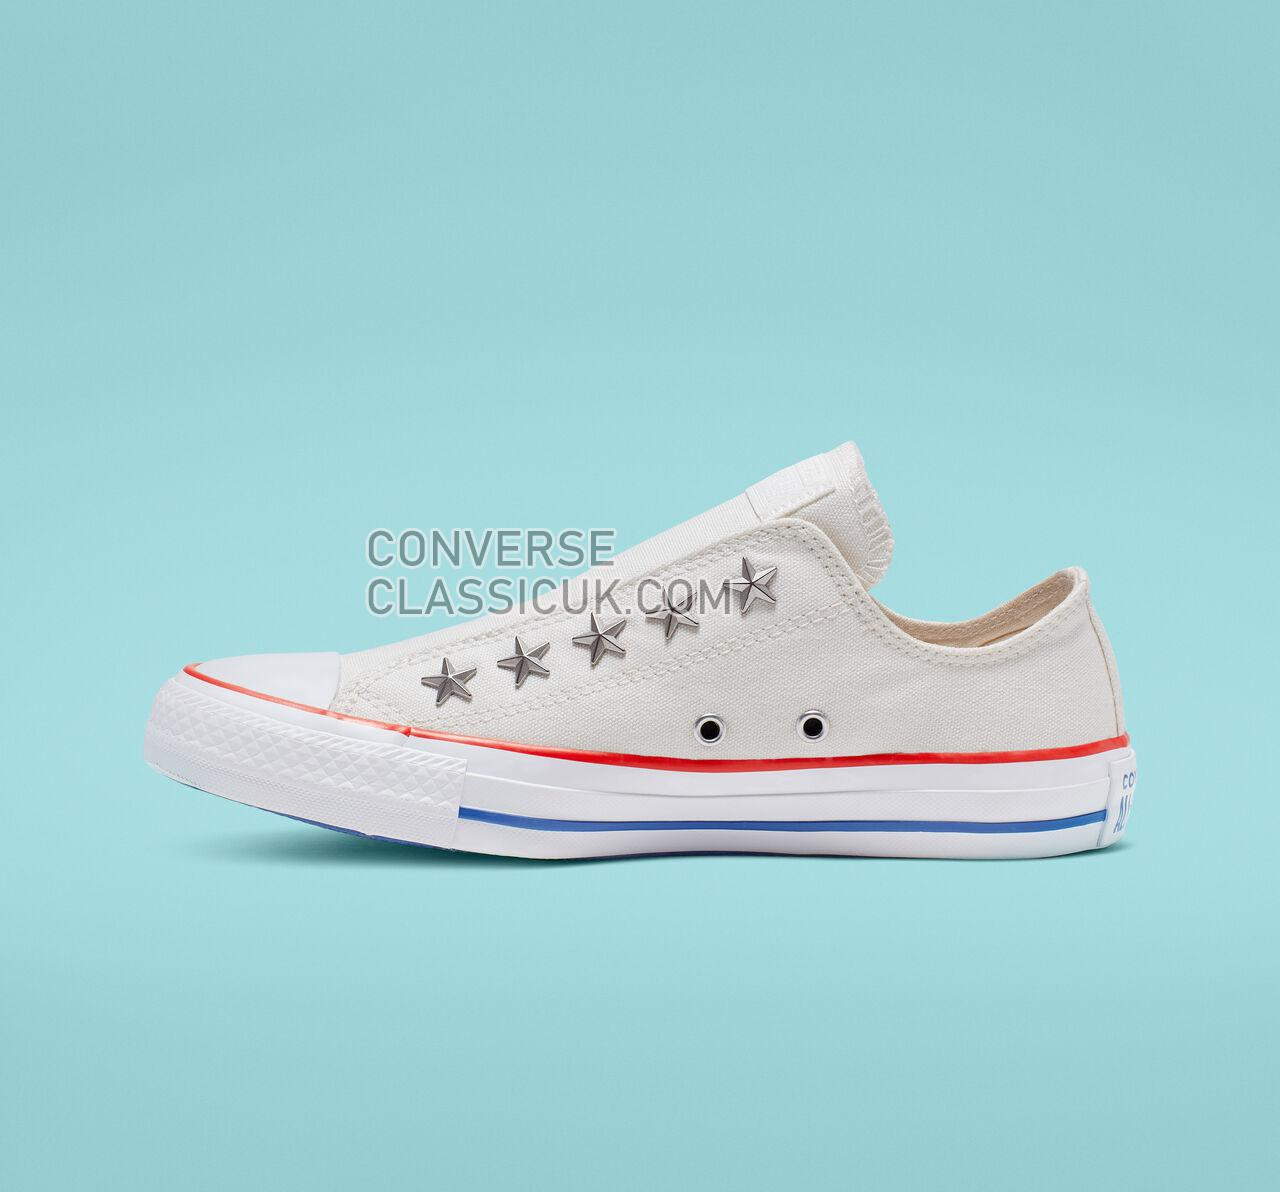 Converse Chuck Taylor All Star Starware Slip Womens 564971C Vintage White/Habanero Red Shoes